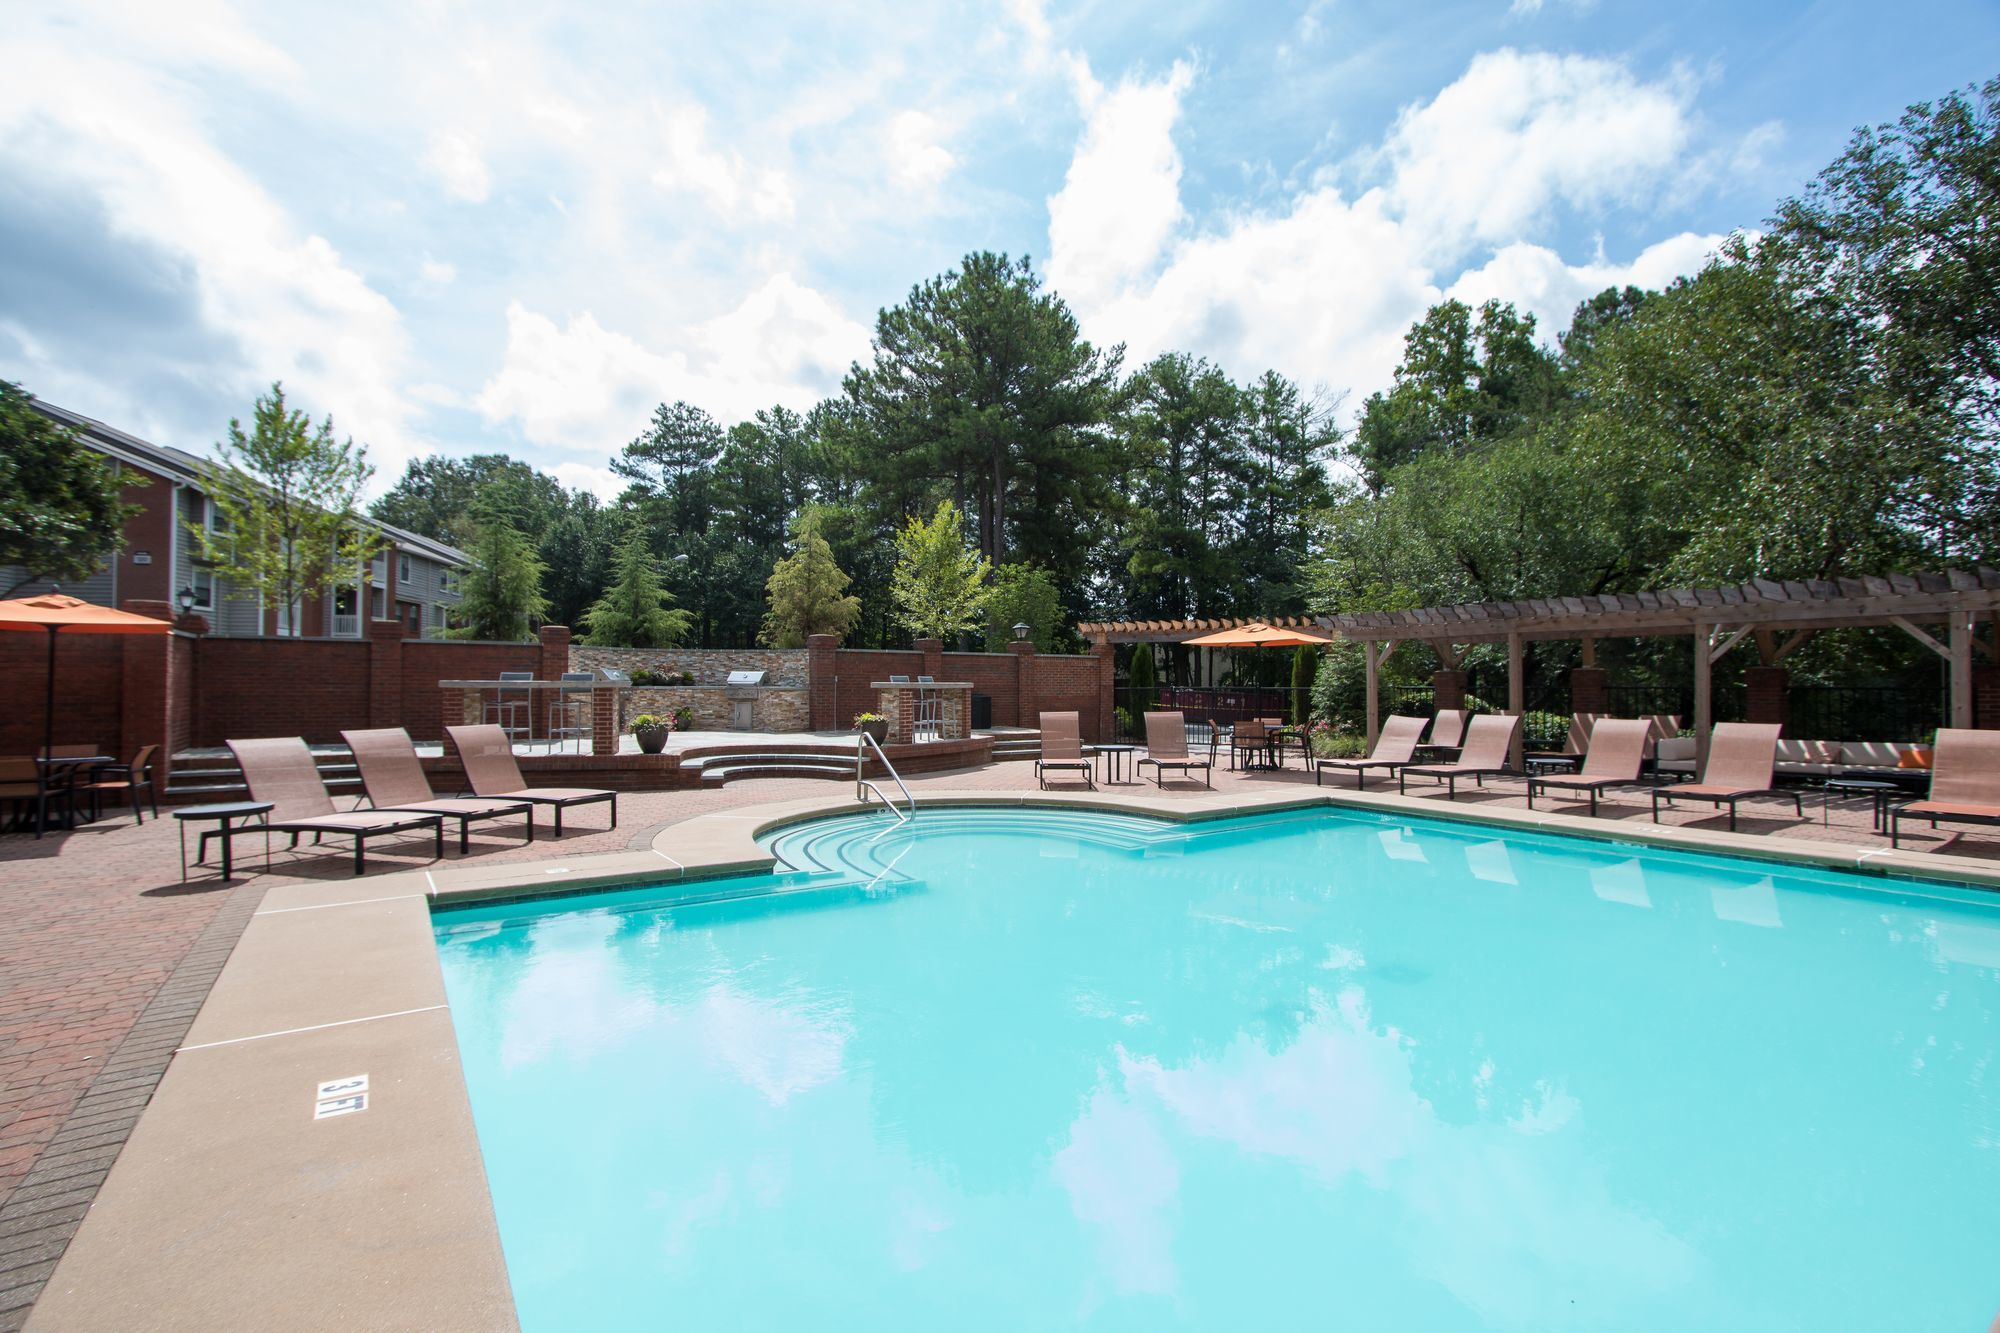 20 Best Luxury Apartments in Lawrenceville, GA (with pics)!